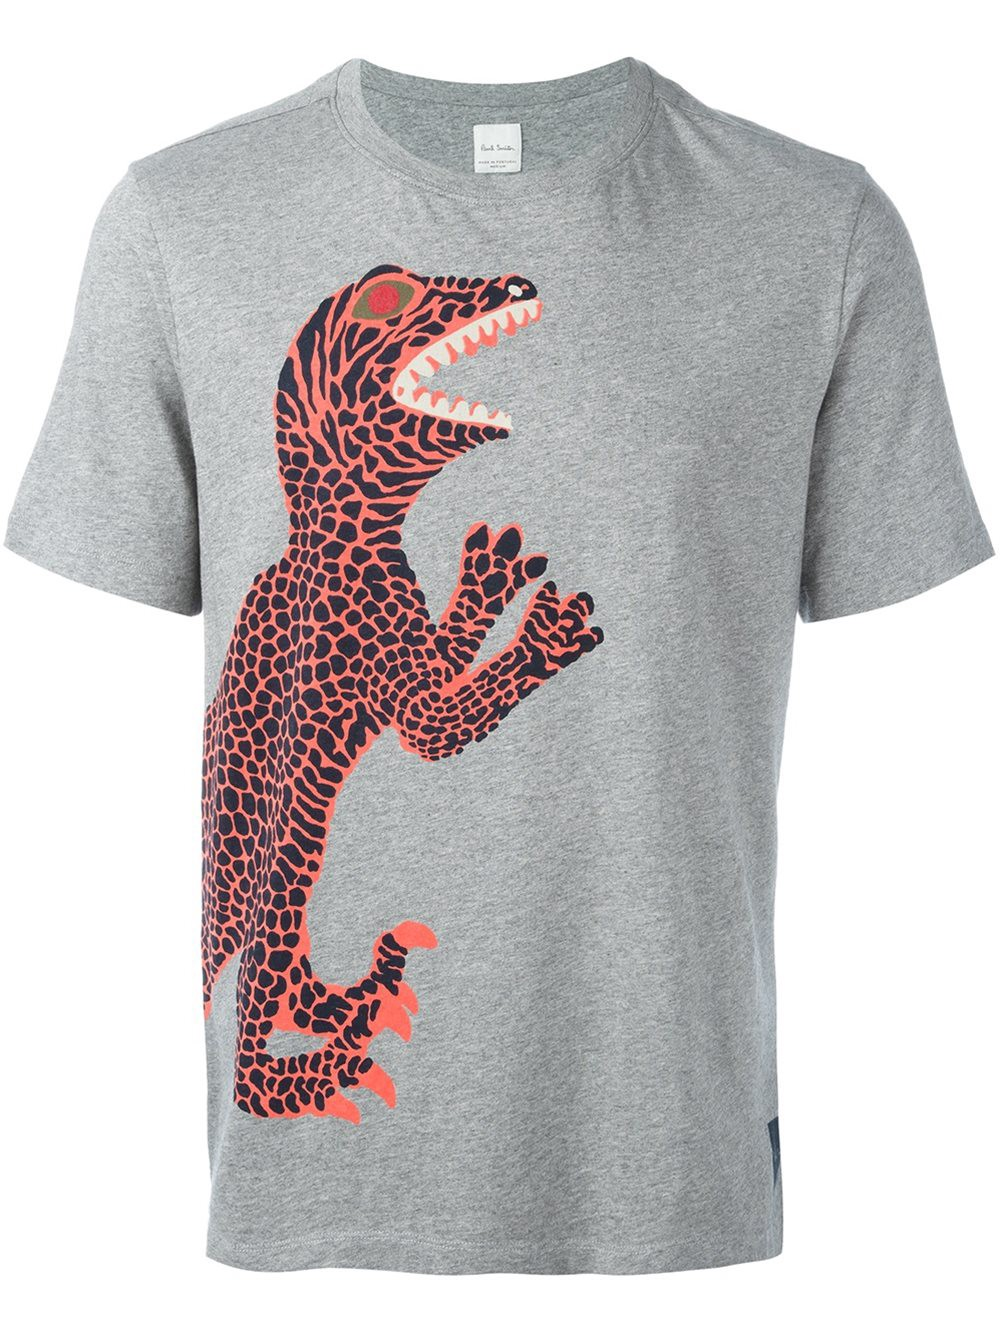 Promotional T Shirts Sydney Online Shopping At Affordable Price